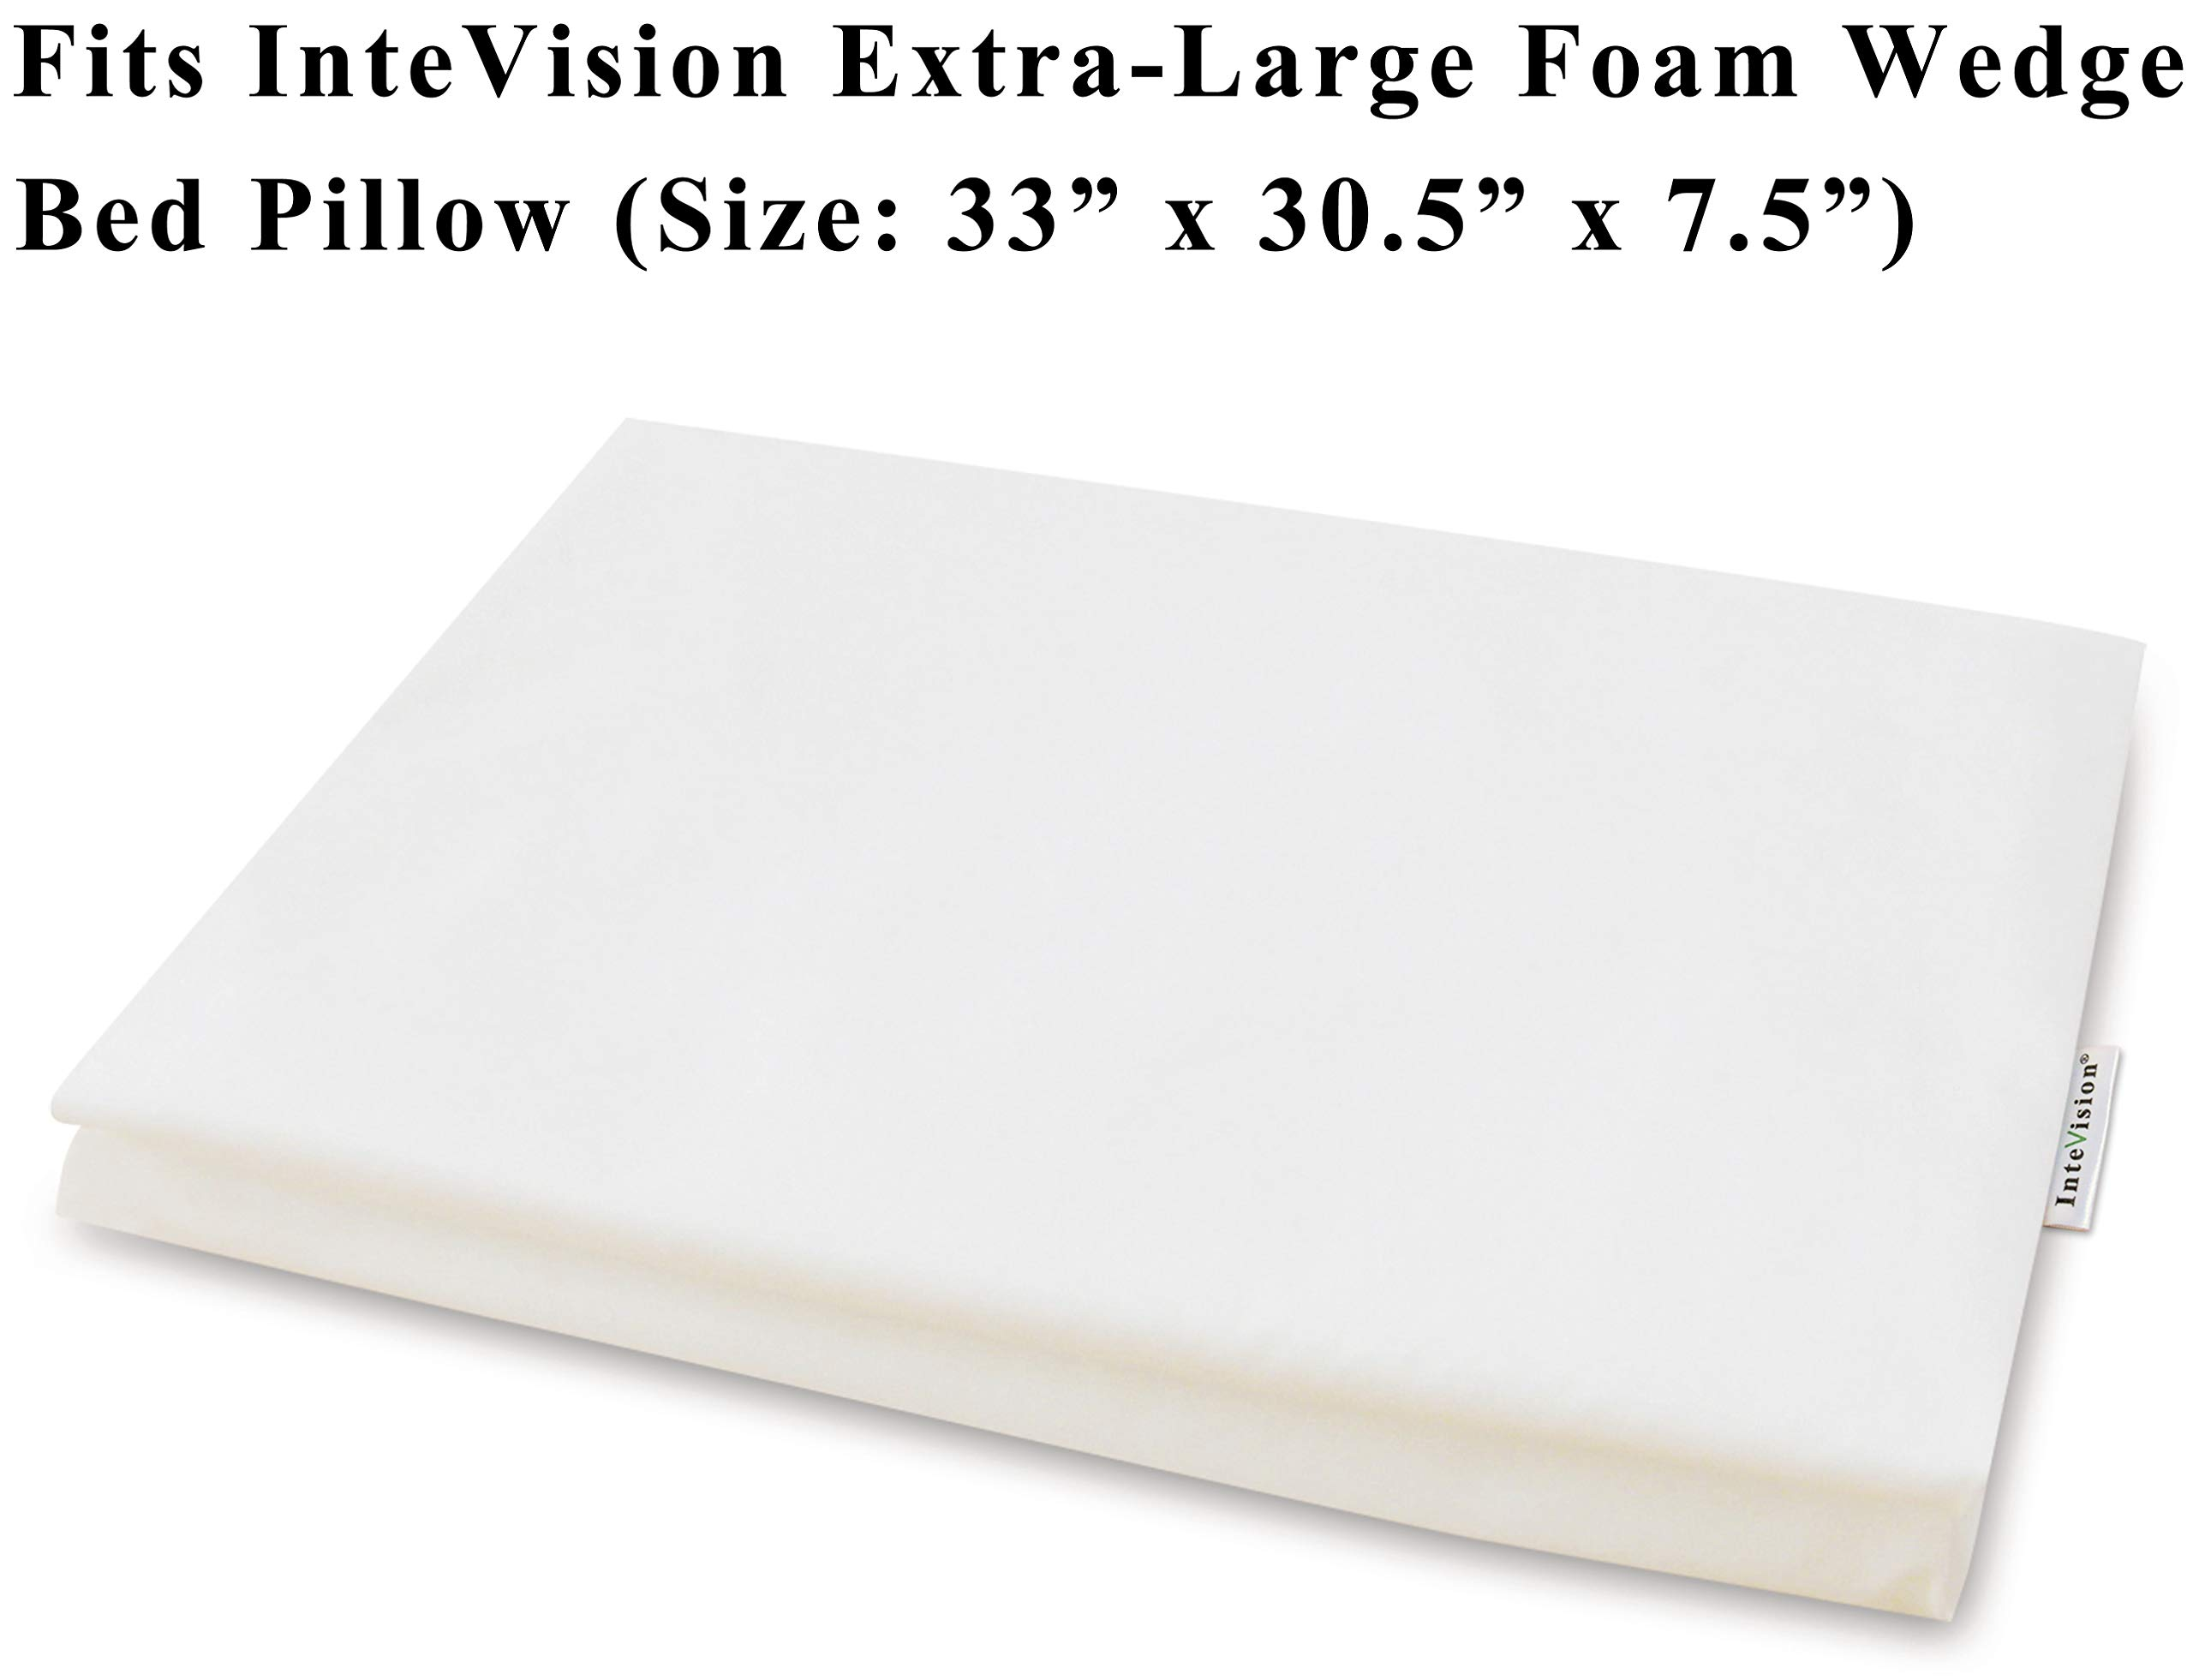 InteVision 400 Thread Count, 100% Egyptian Cotton Pillowcase. Designed to Fit The InteVision Extra-Large Foam Wedge Bed Pillow (33'' x 30.5'' x 7.5'') by InteVision